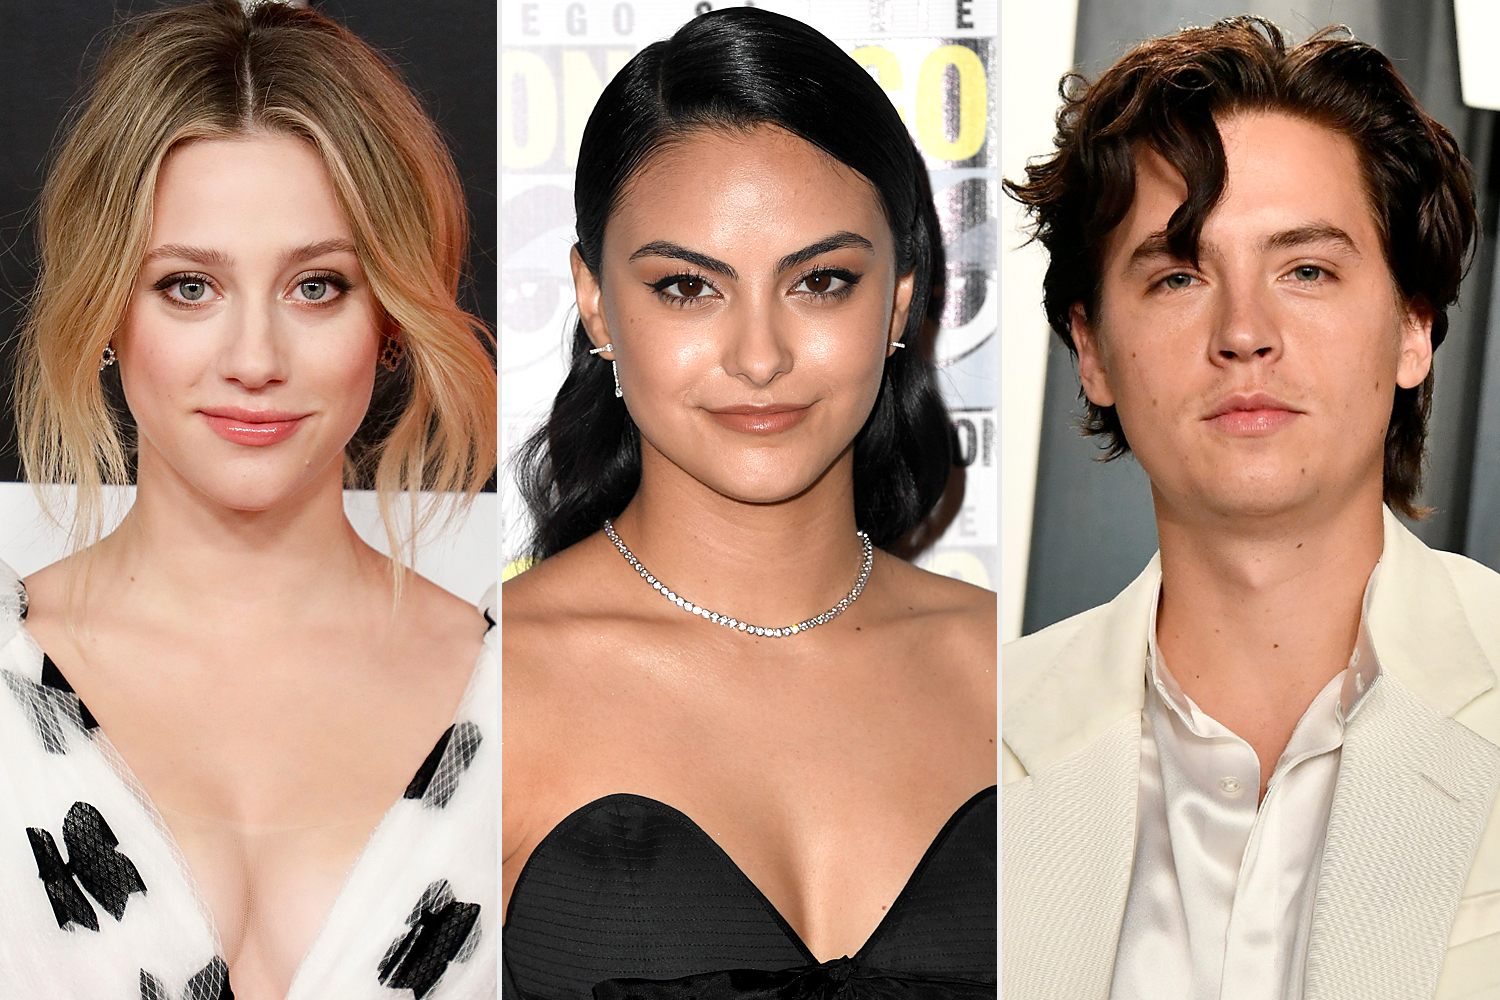 Lili Reinhart; Camila Mendes; Cole Sprouse